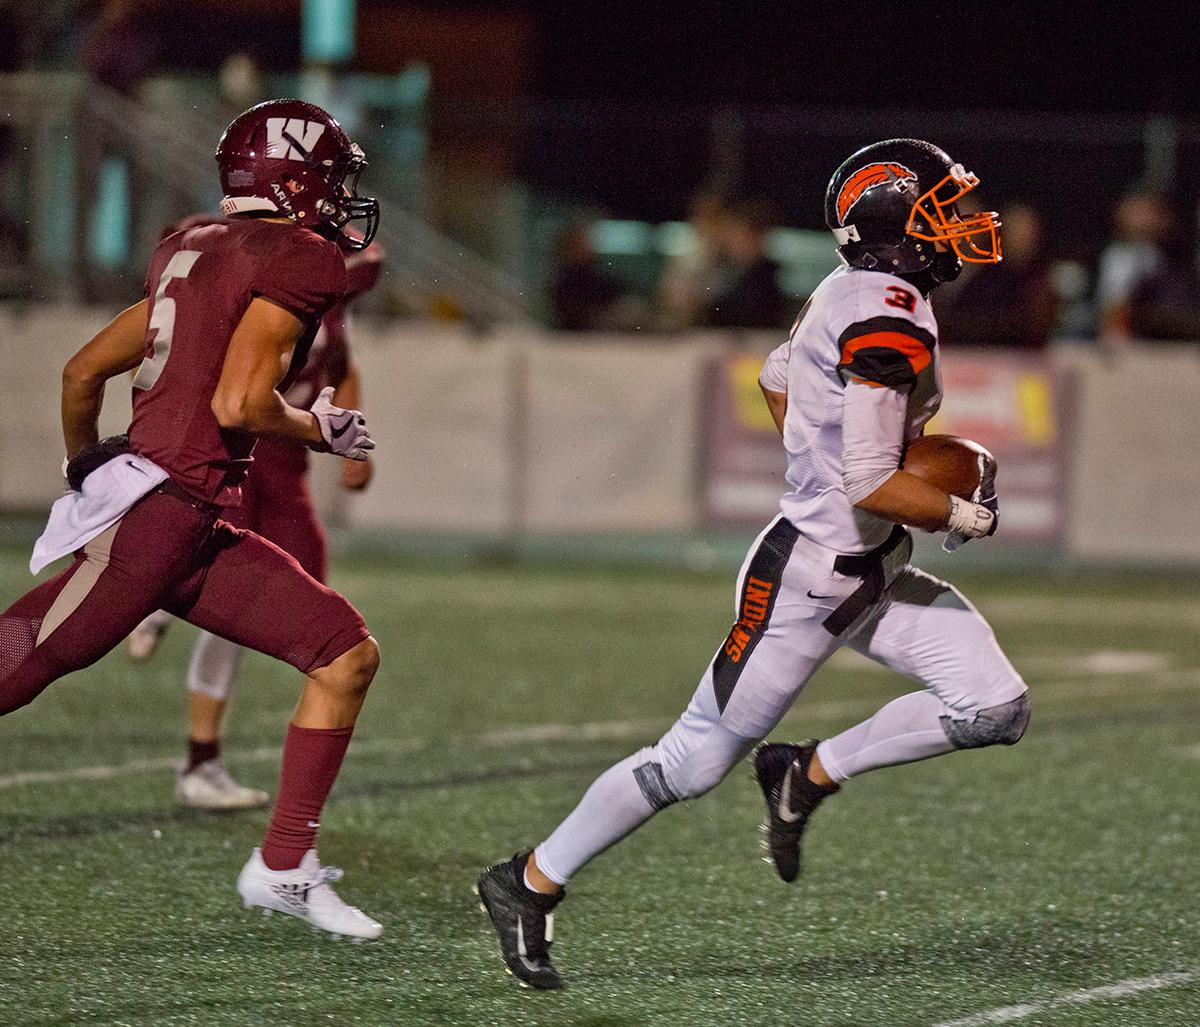 Roseburg Indians wide receiver Jondre Smith (#3) sprints into the end zone for a score against the Willametter Wolverines. Roseburg defeated Willamette 21-20 at Wolverine Stadium. Photo by Dan Morrison, Oregon News Lab